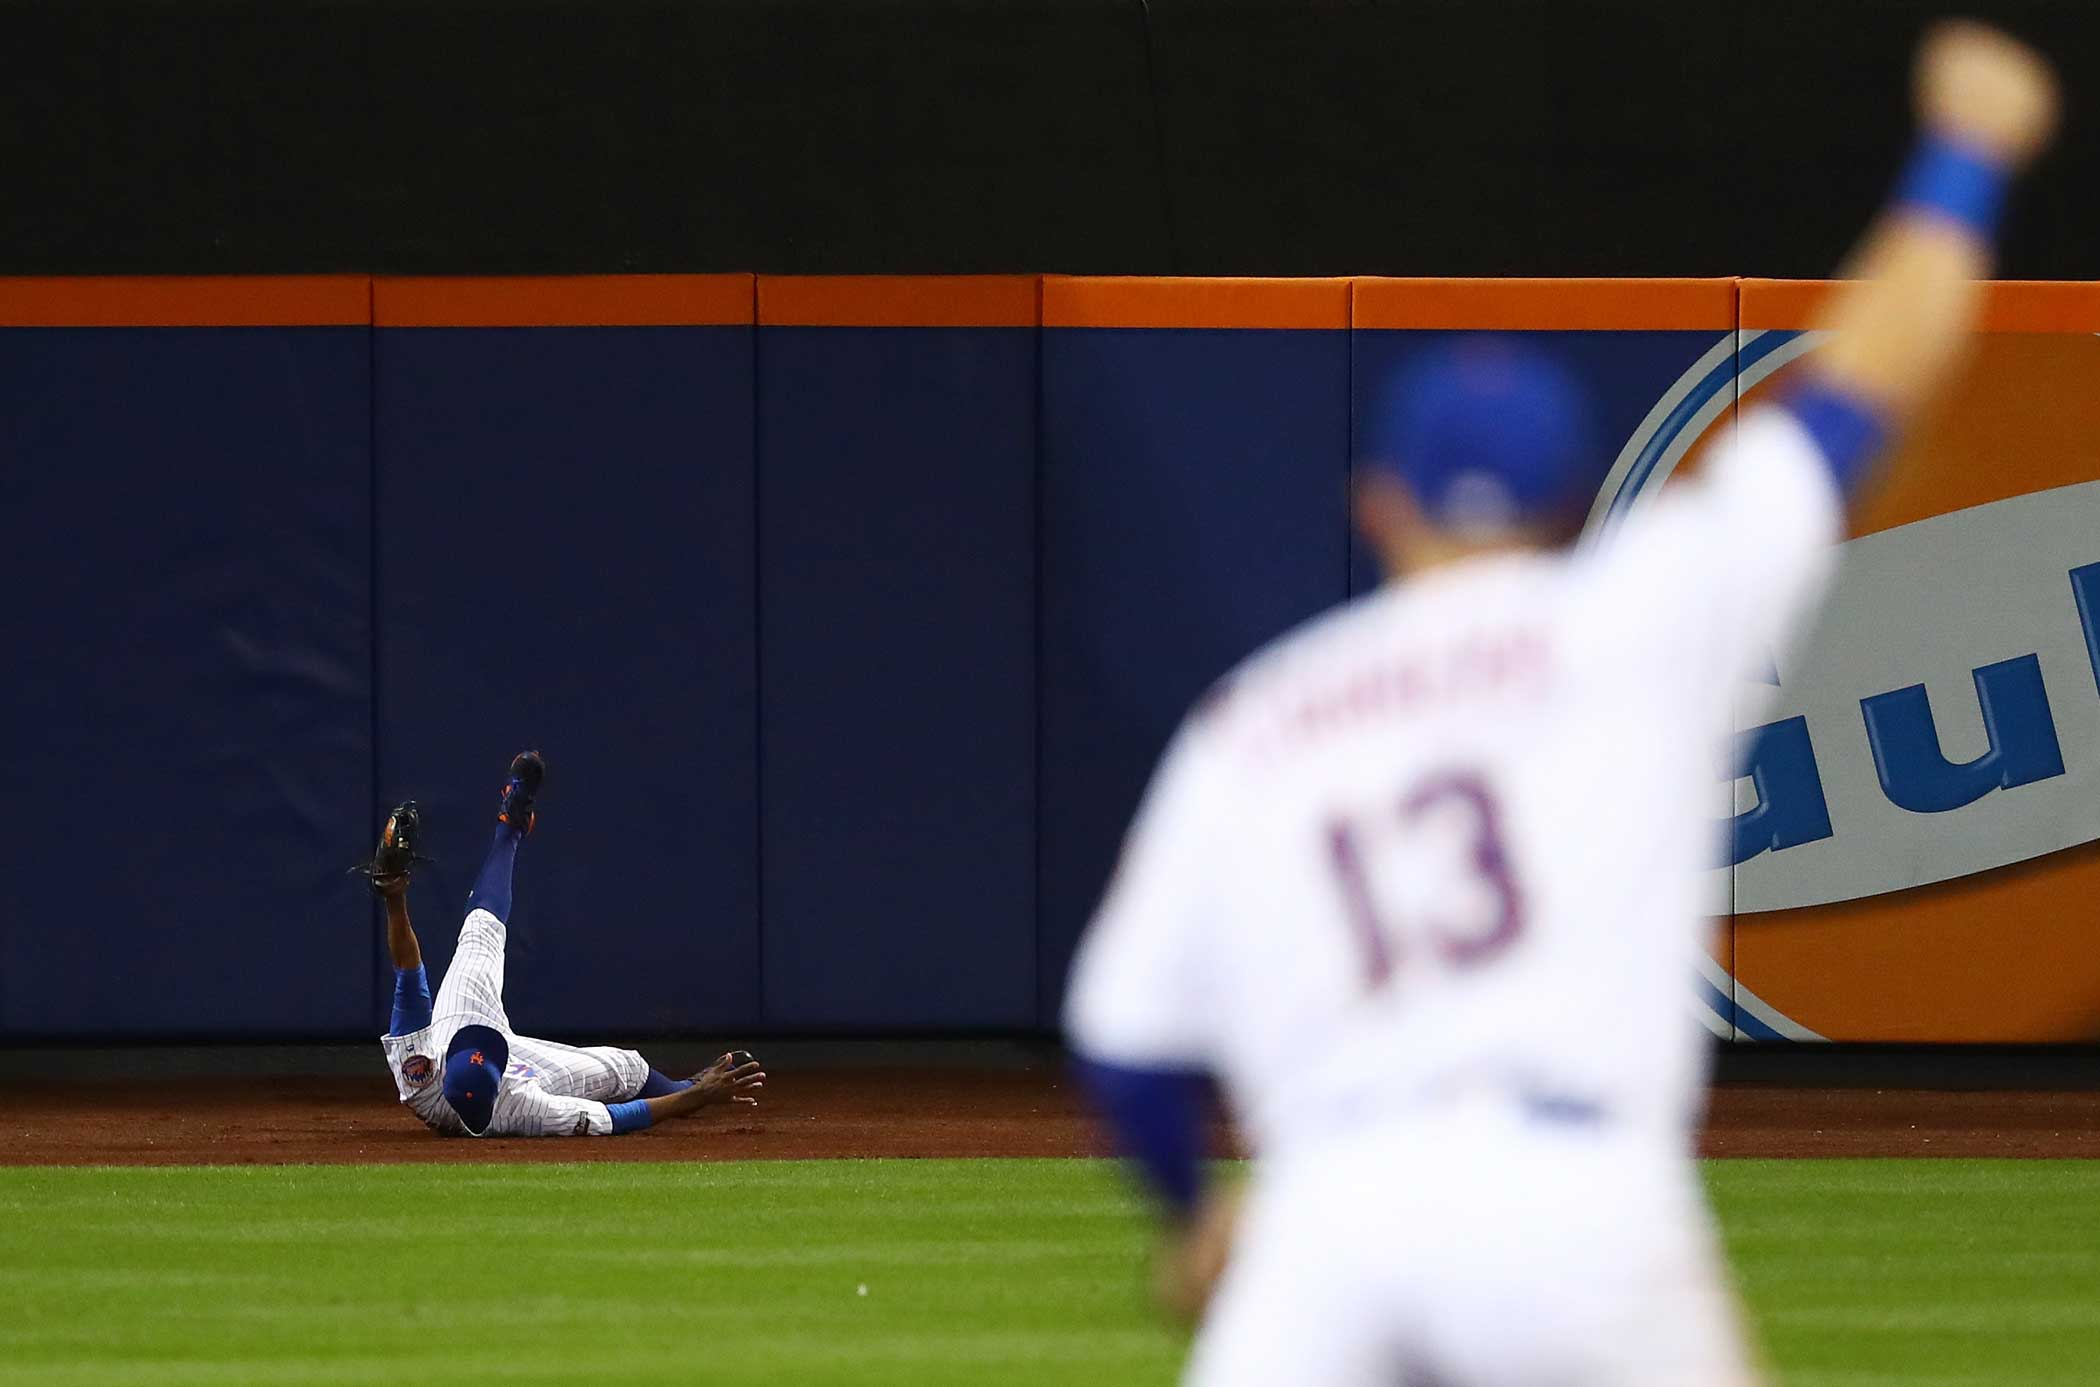 Curtis Granderson of the New York Mets catches a ball hit by Brandon Crawford of the San Francisco Giants for an out in the fifth inning during their National League Wild Card game at Citi Field on Oct. 5 in New York City.